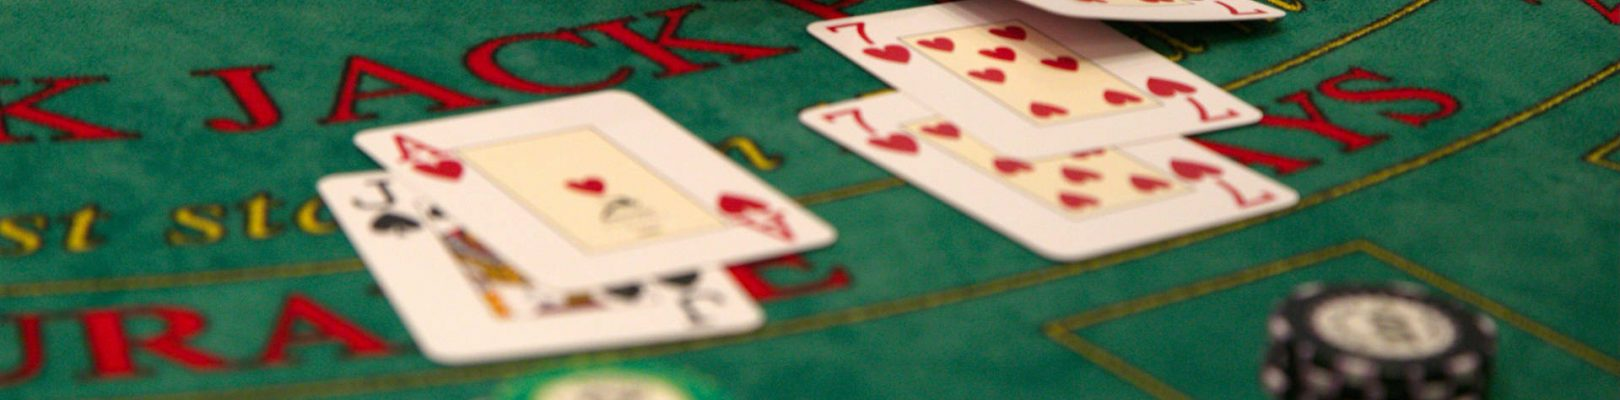 Kurs 4: Blackjack